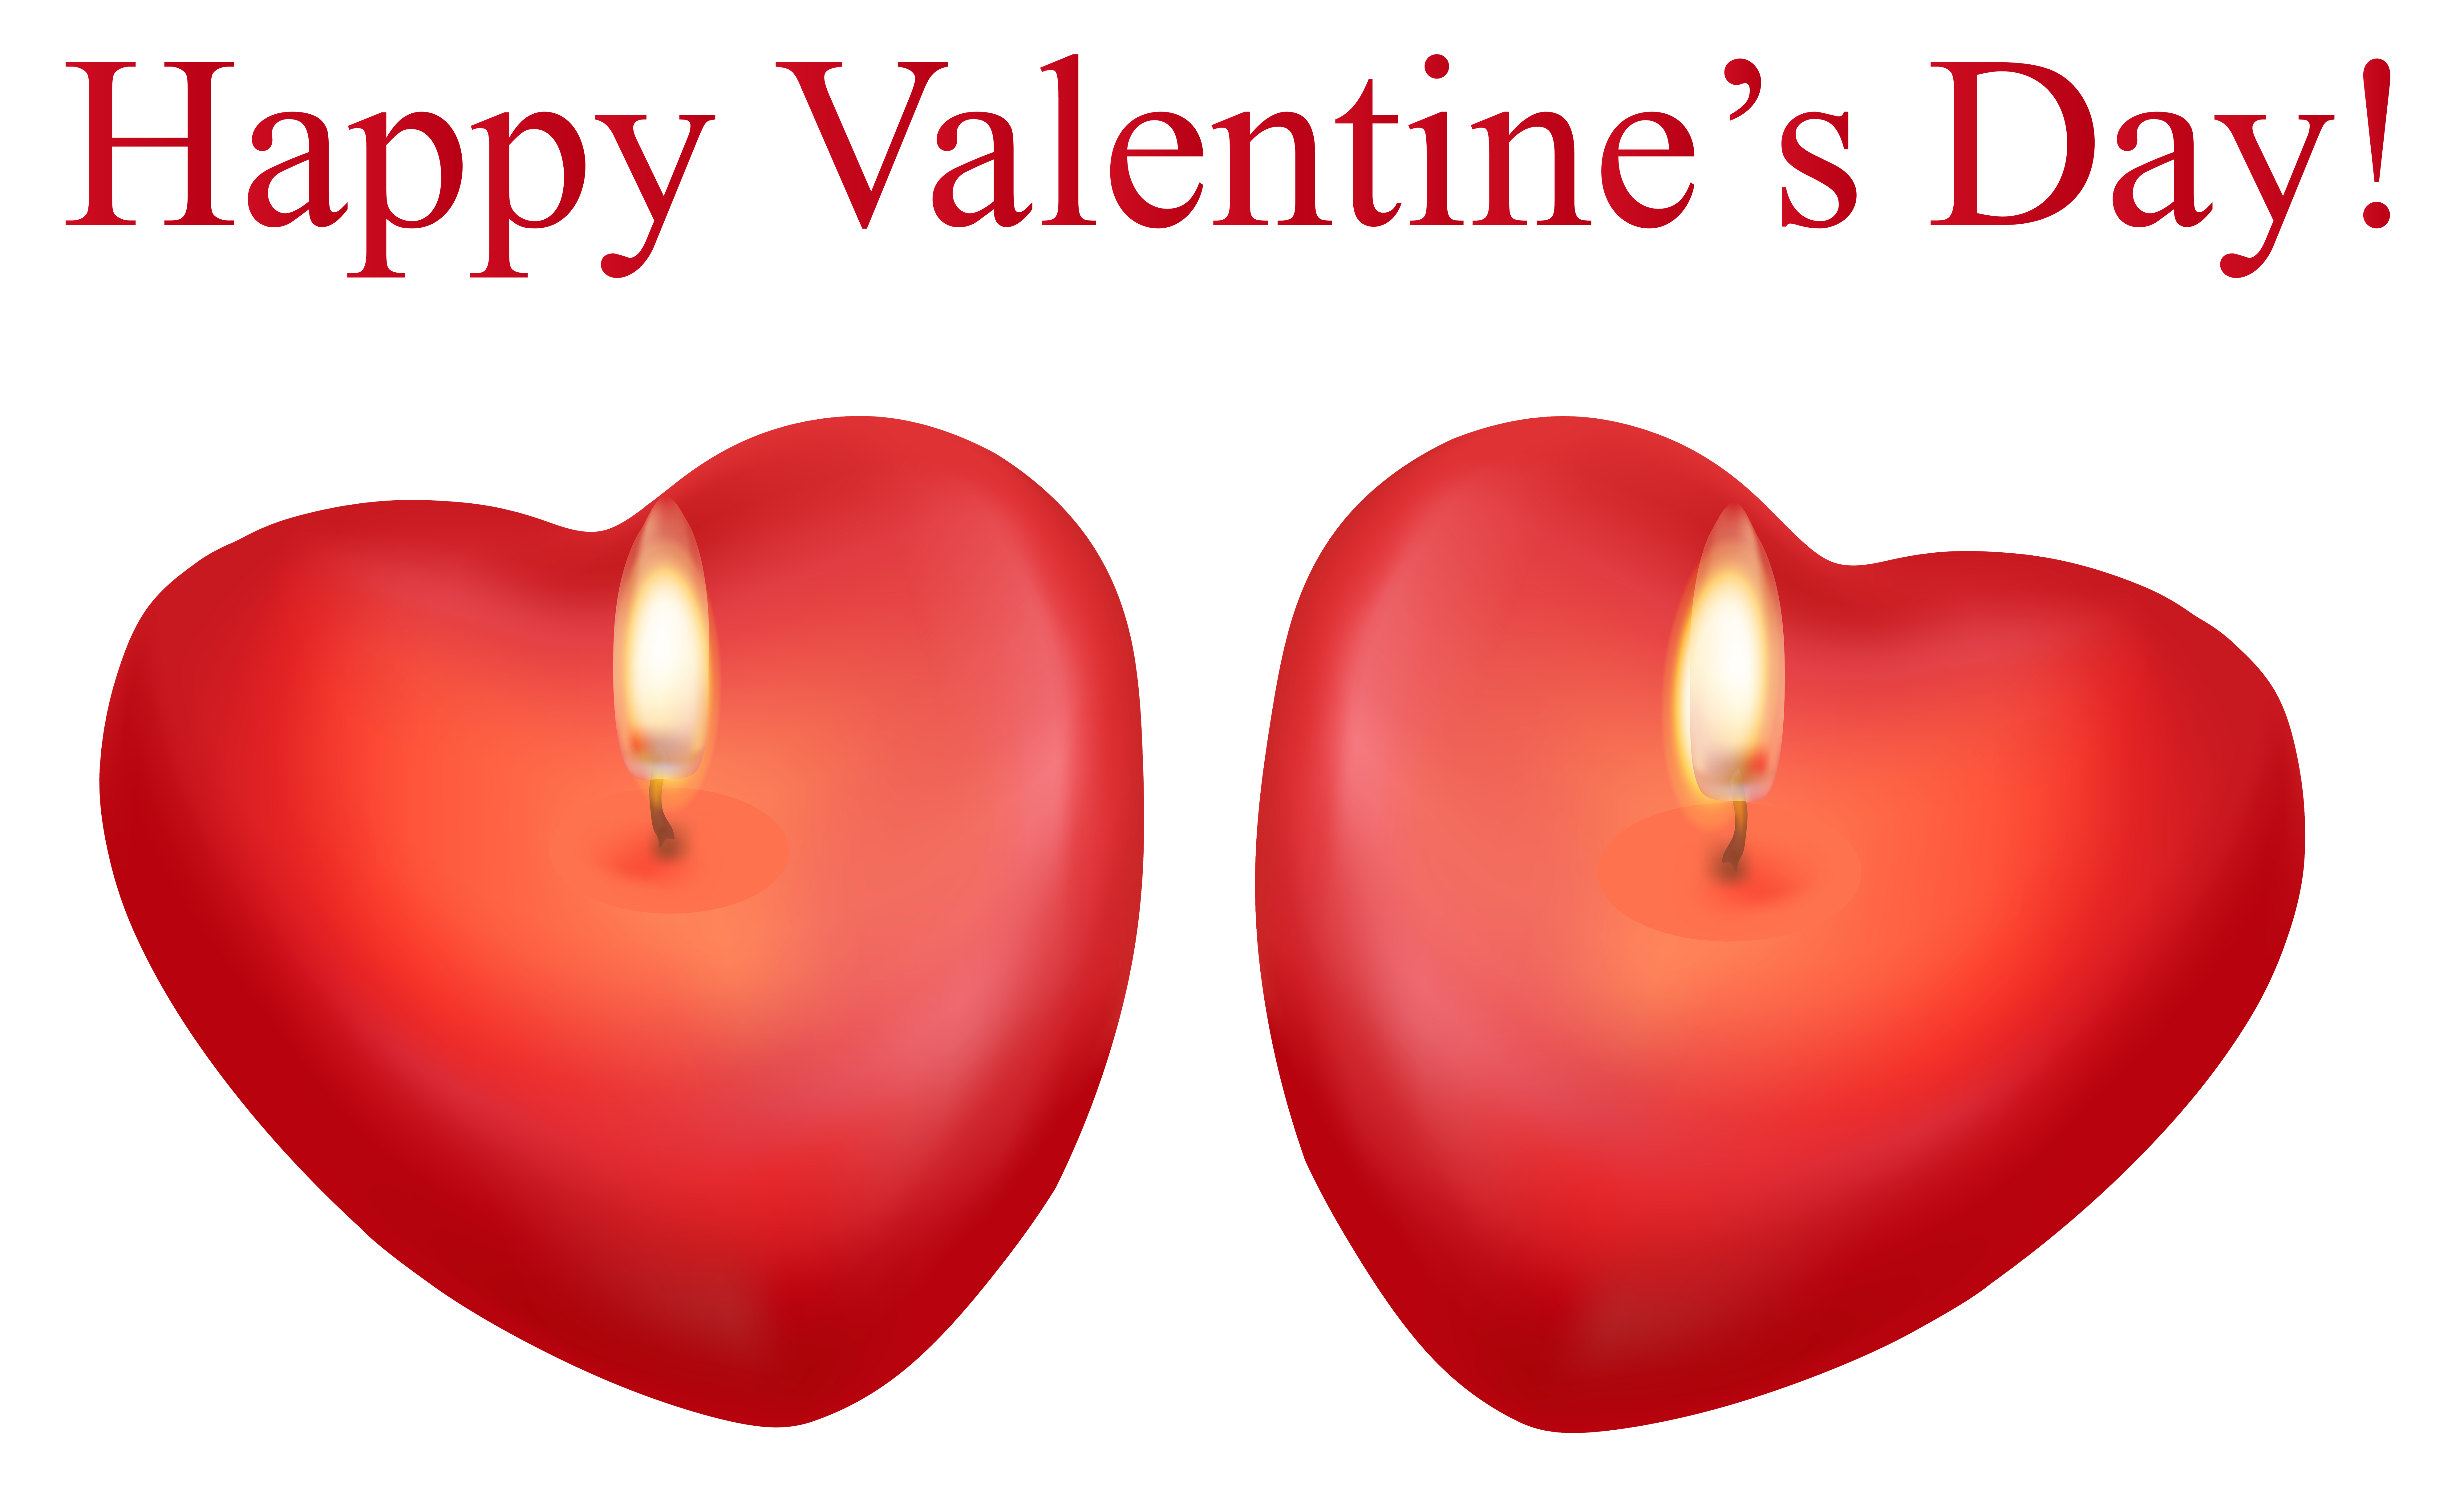 Valentines day hearts clipart transparent clipart library download Happy Valentine's Day Heart Candles Transparent PNG Clip Art Image clipart library download